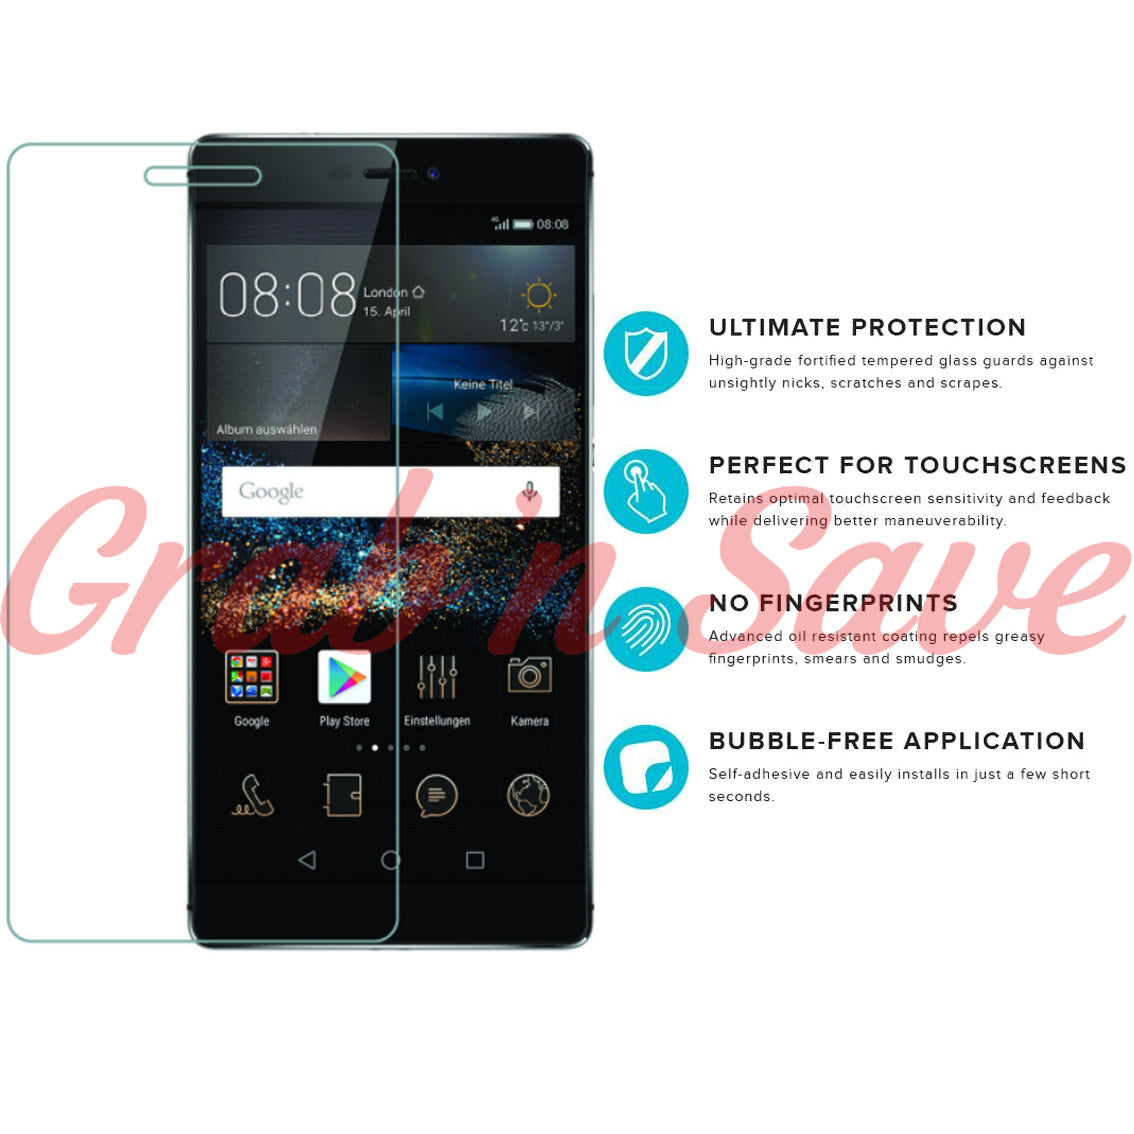 Huawei P8 Screen Protector, Glass Screen Protector, Tempered Glass Screen Protector